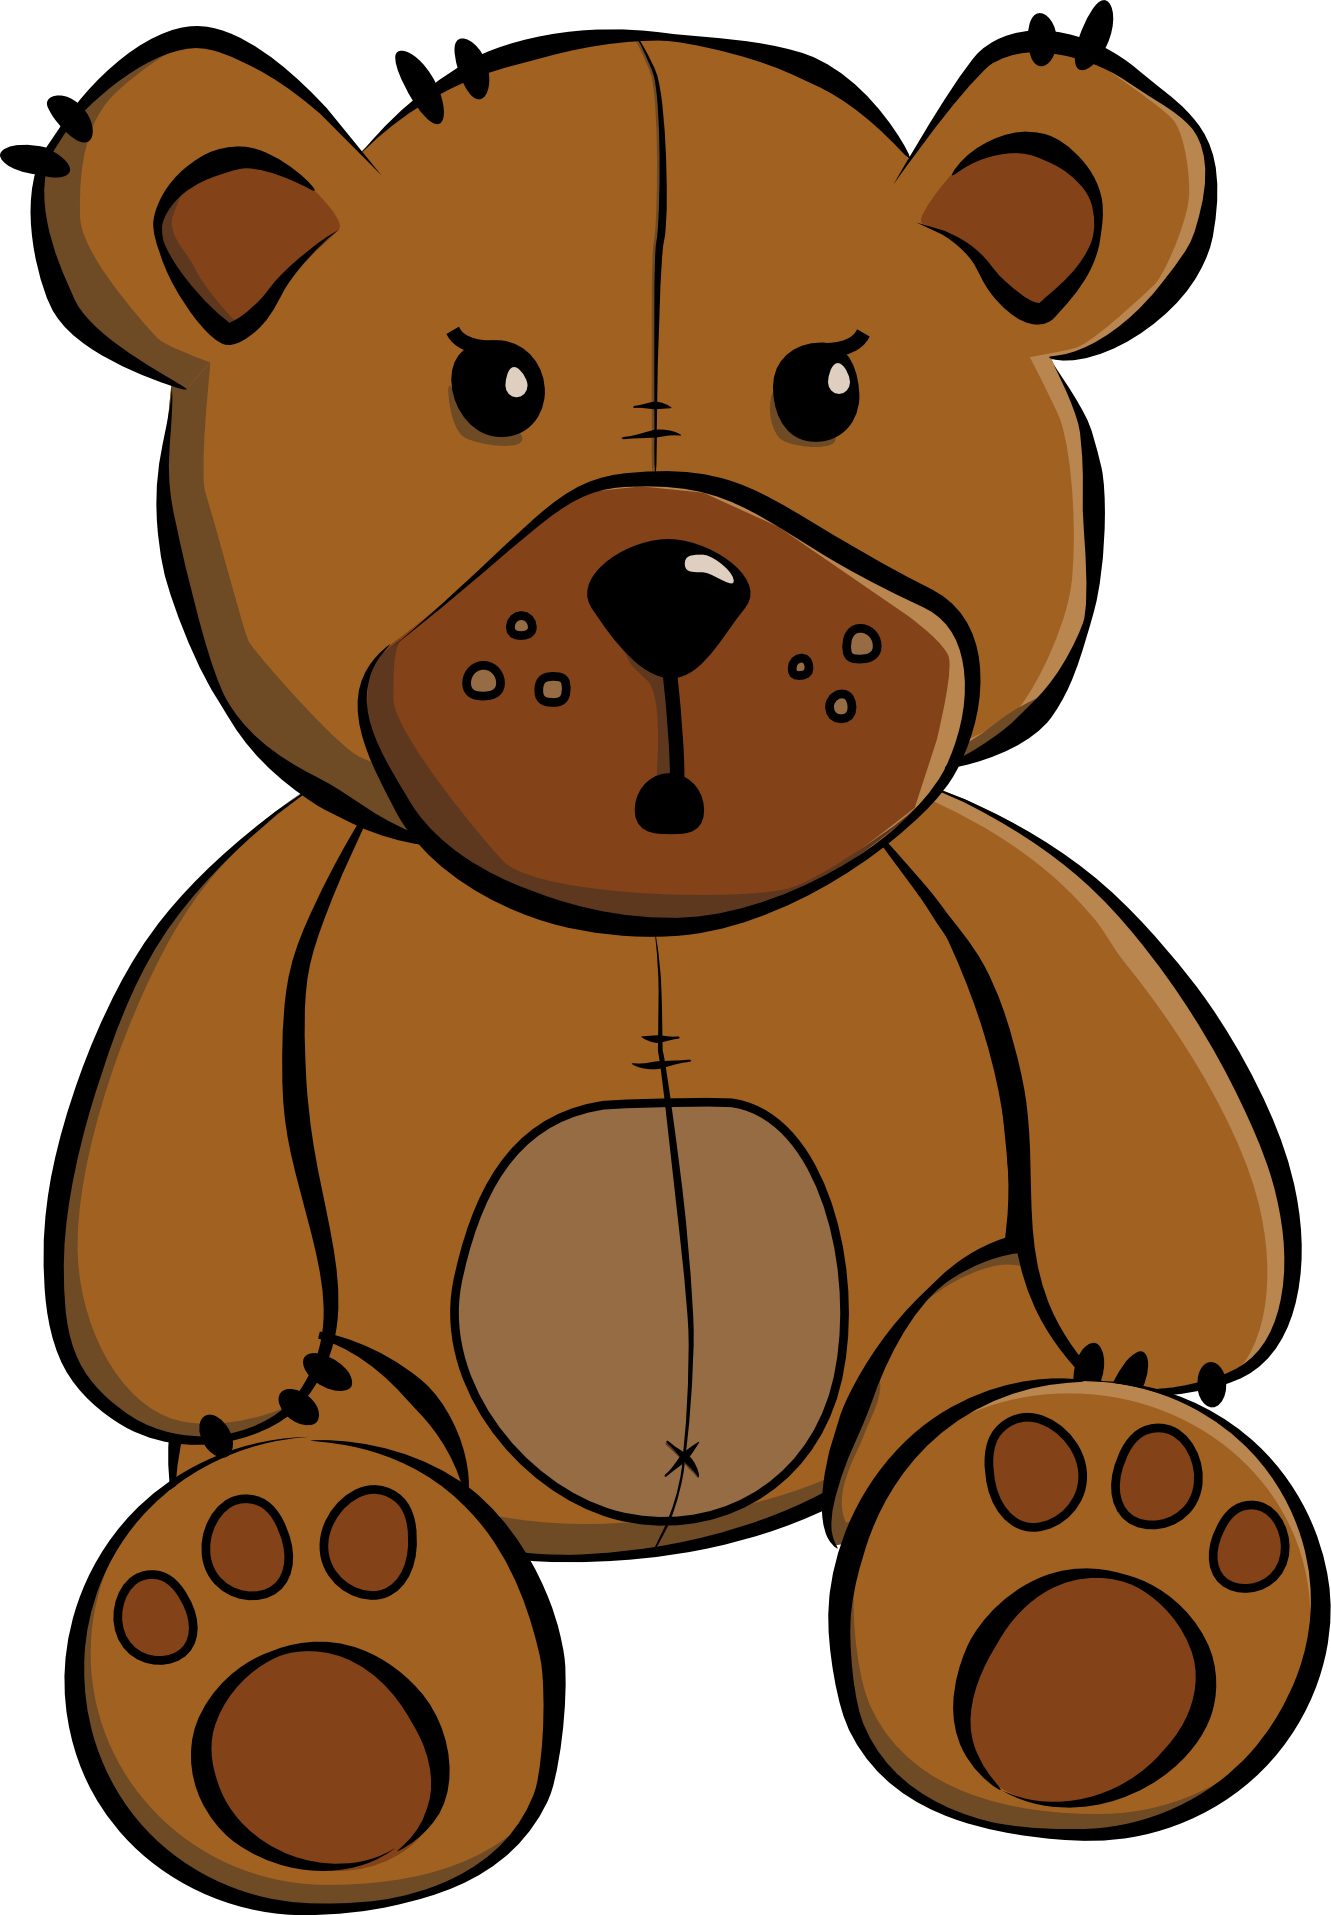 Halloween teddy bear clipart banner Free Teddy Bear X Clipart banner